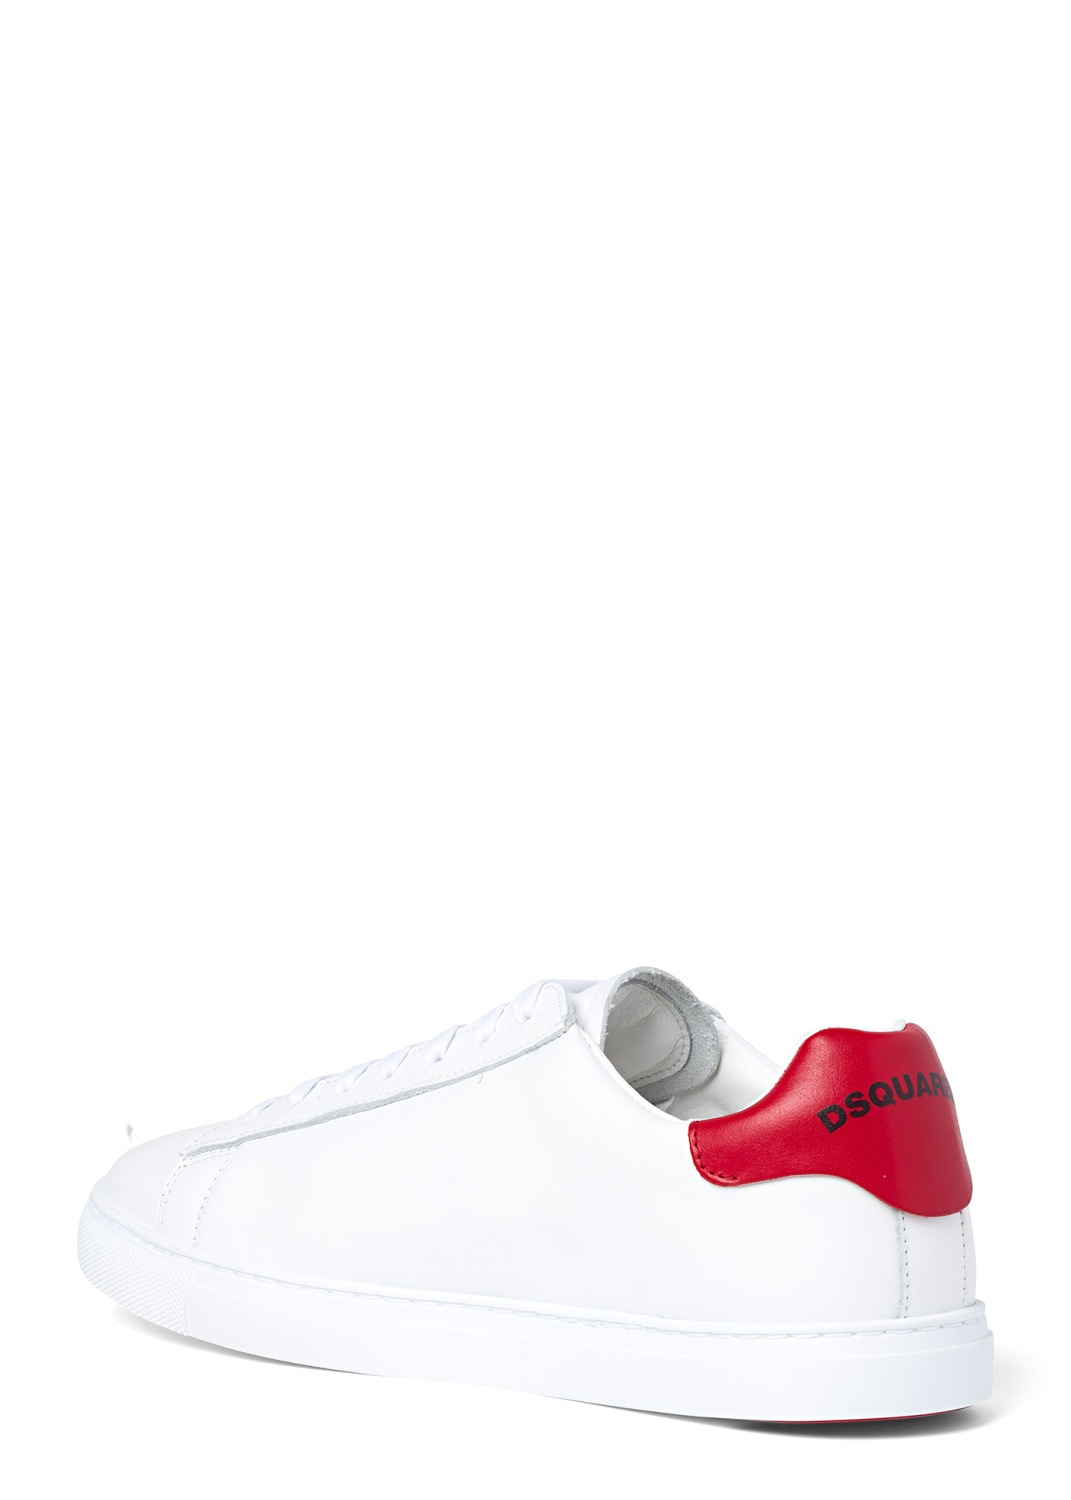 ICON NEW TENNIS SNEAKER image number 2